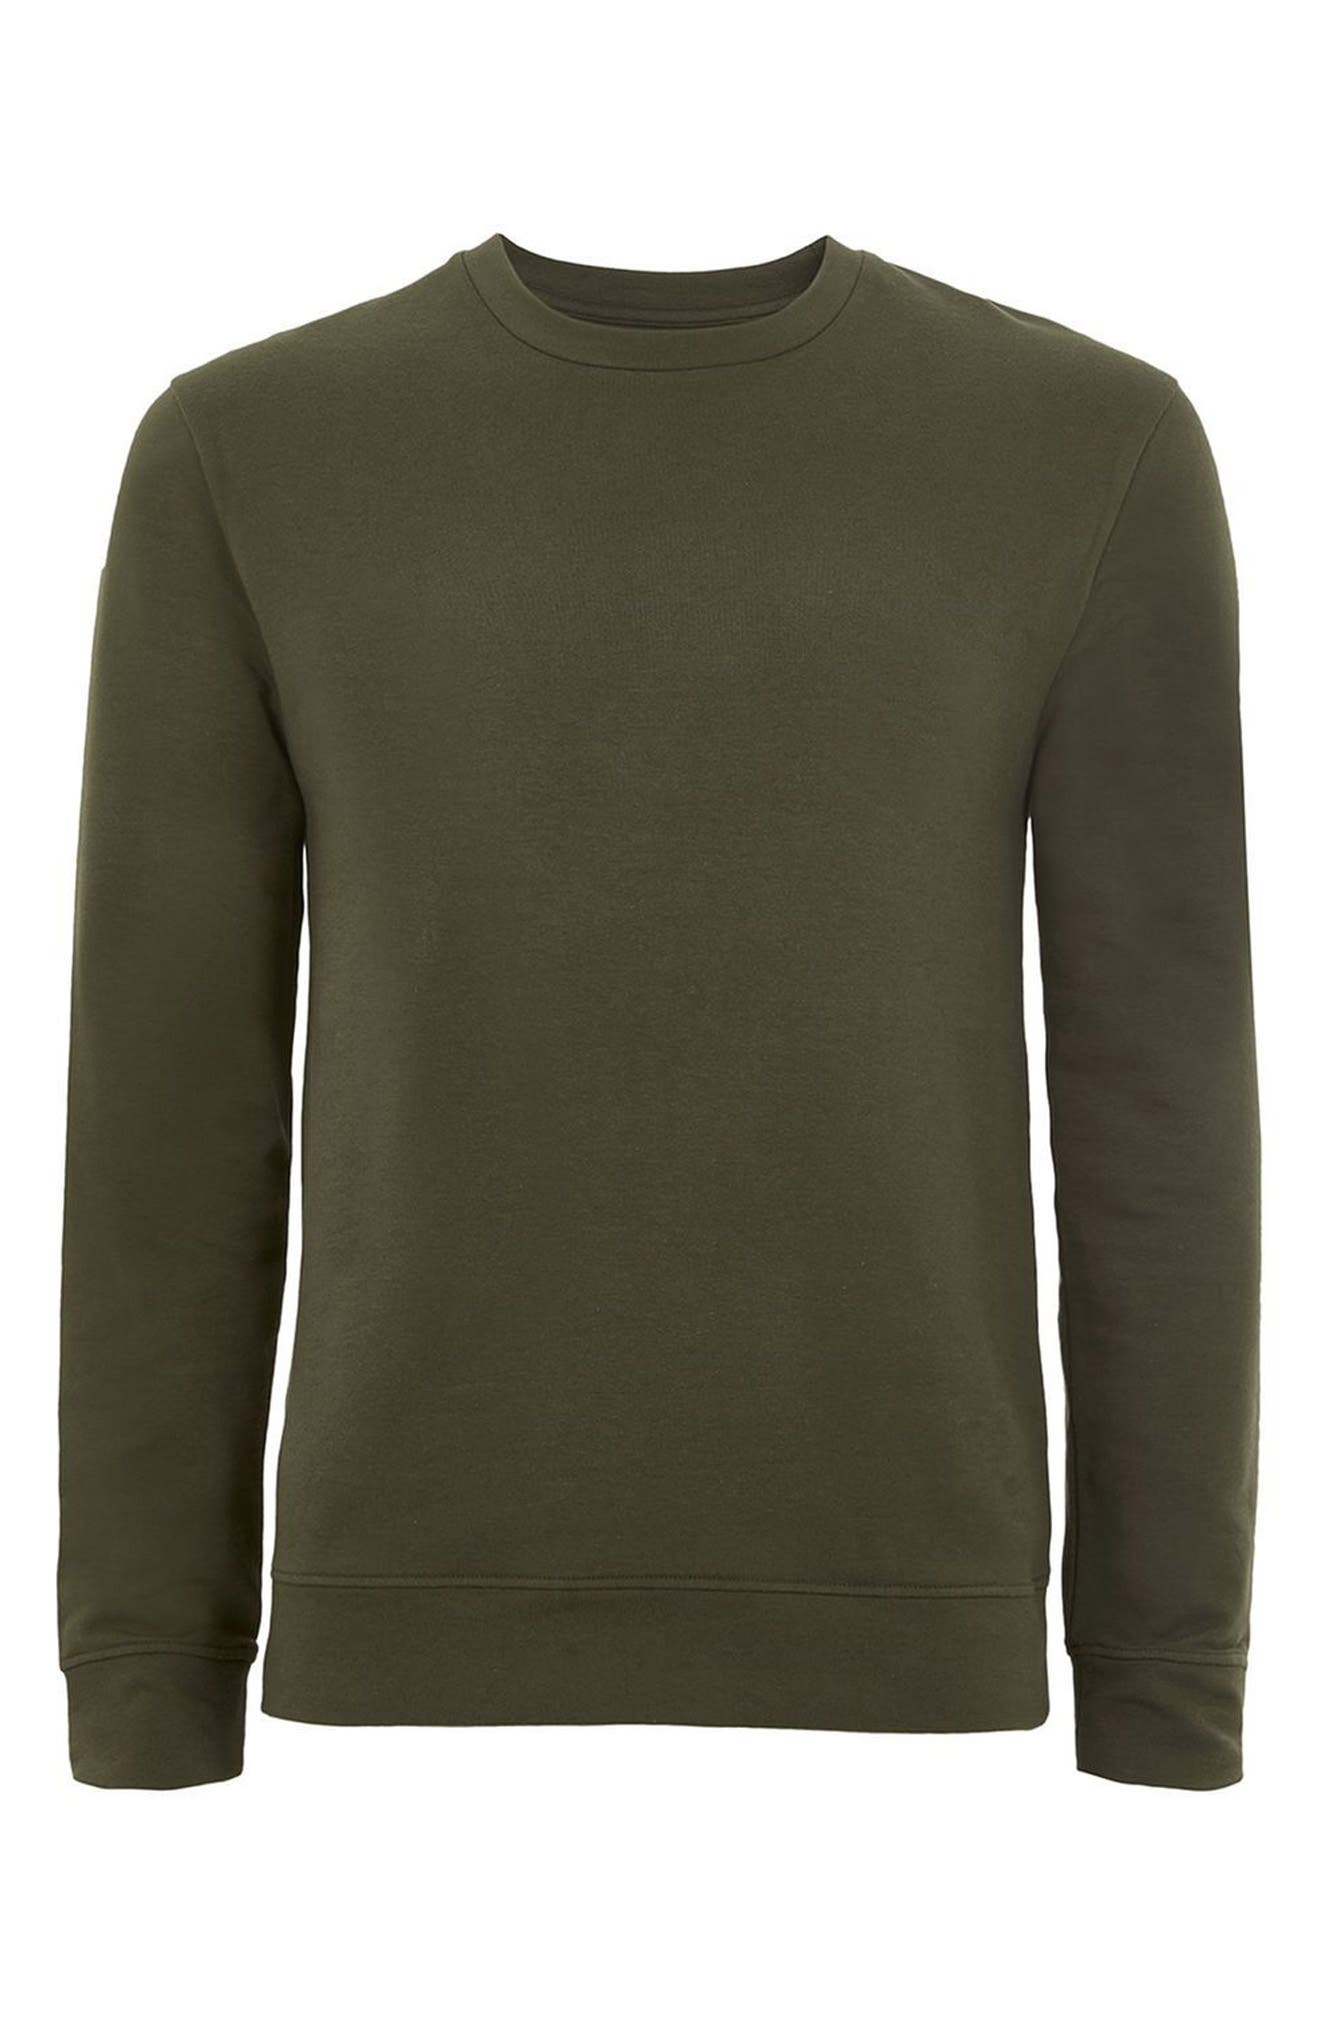 Ultra Muscle Fit Sweatshirt,                             Alternate thumbnail 4, color,                             Olive